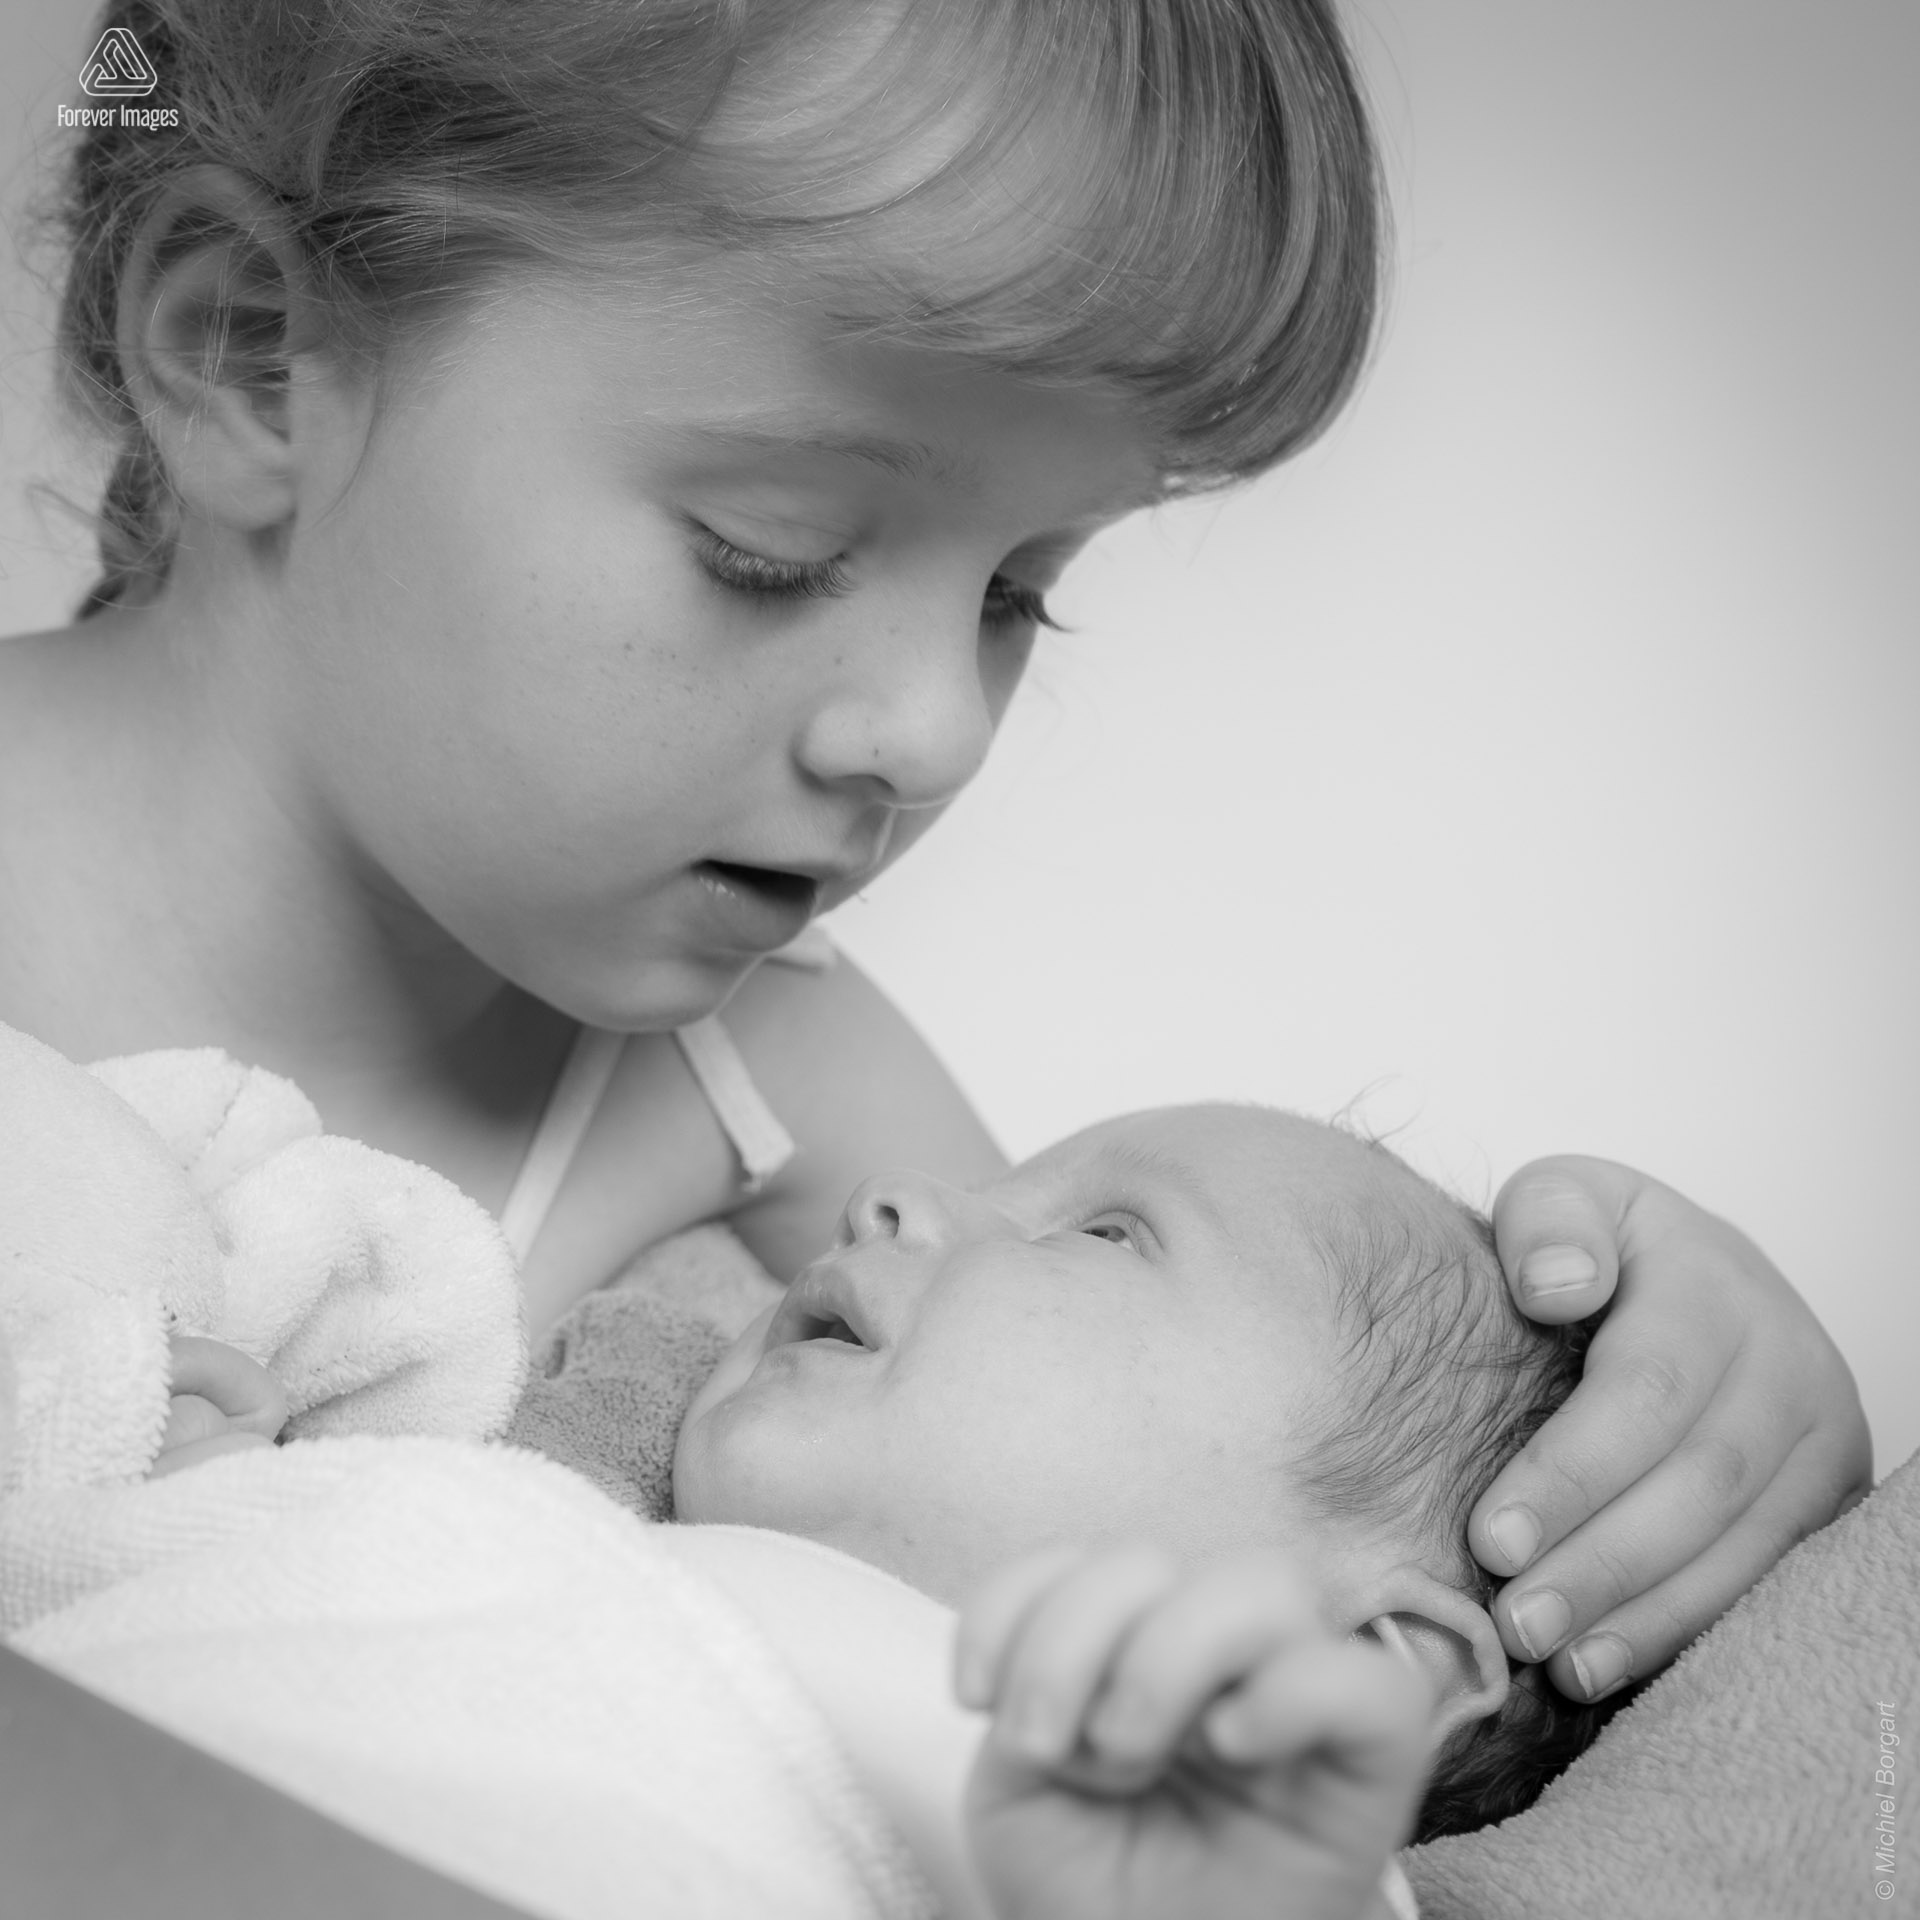 Portrait photo newborn baby new born being held by his big sister | Rozelinde Kylian | Portrait Photographer Michiel Borgart Forever Images.